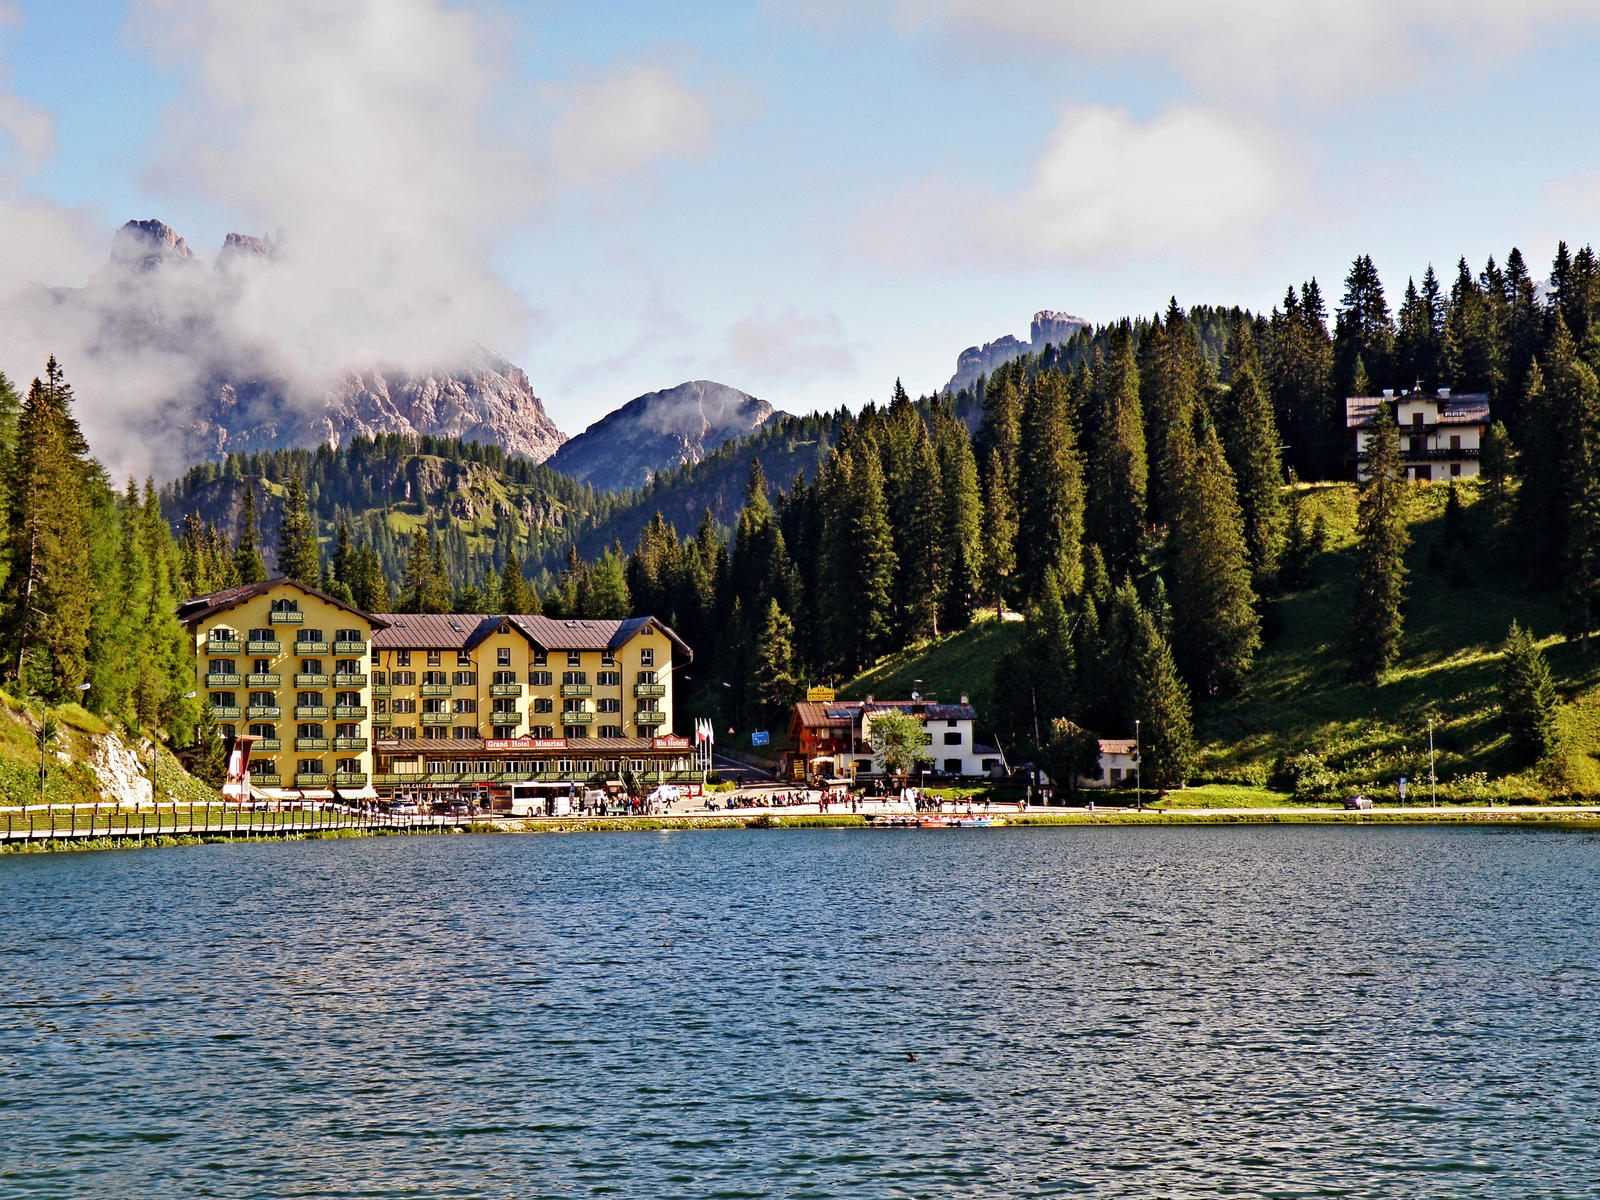 Grand Hotel Misurina Neckermann